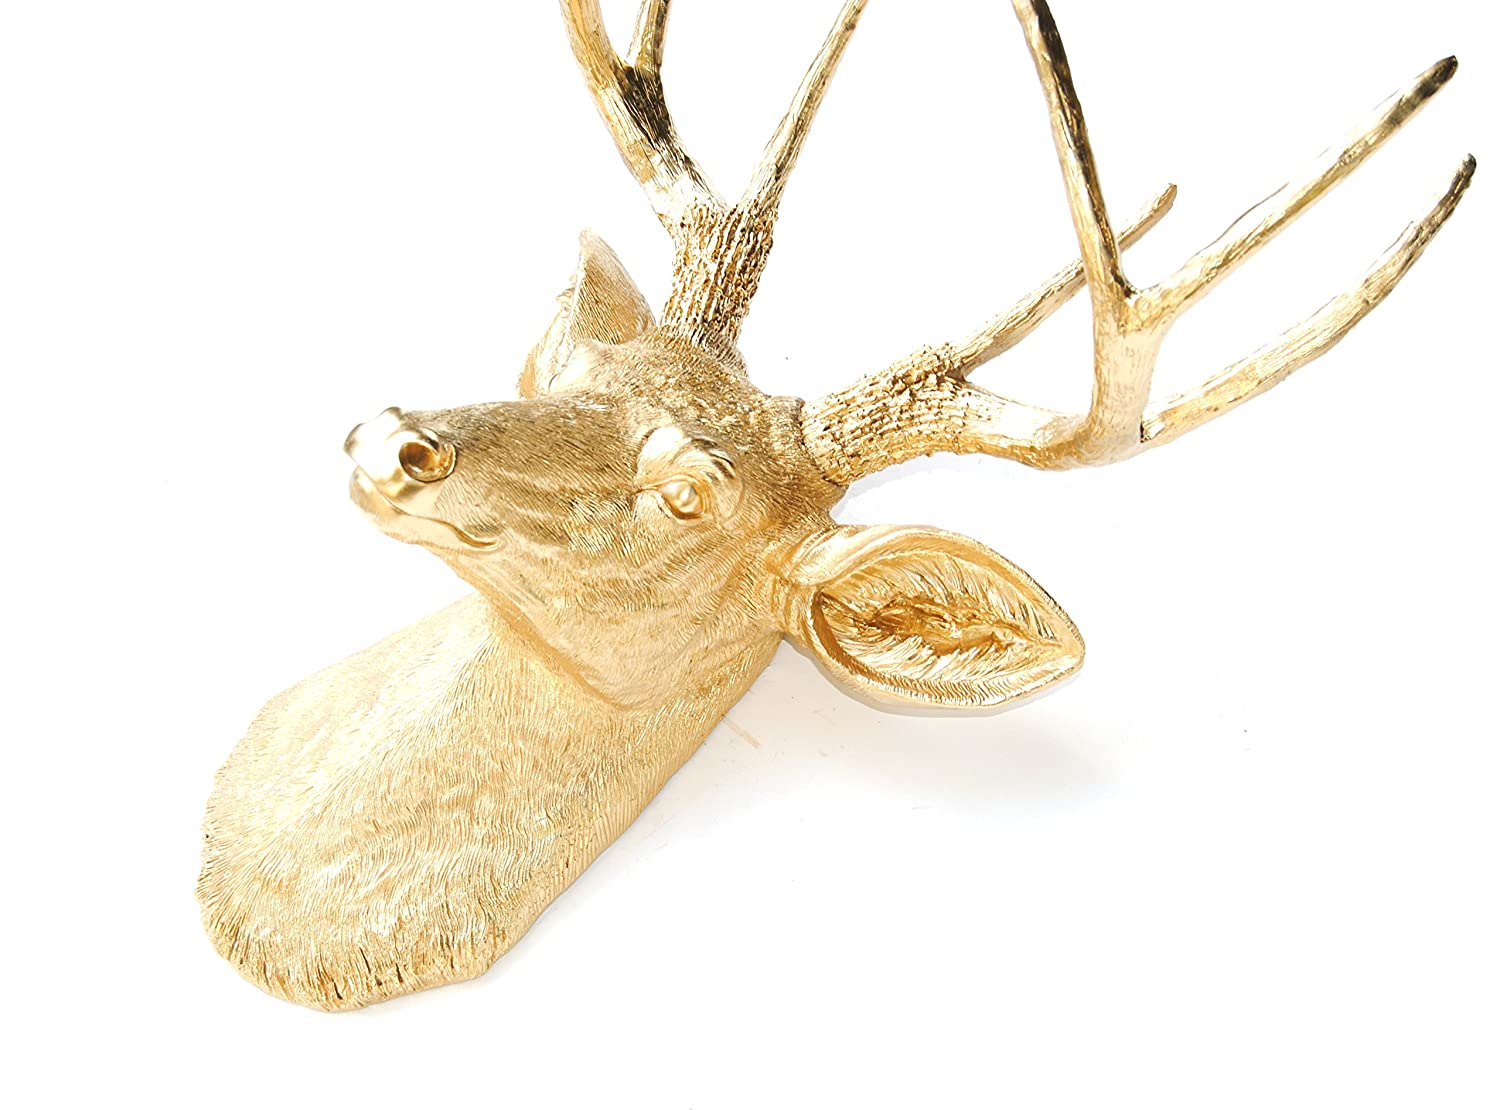 Amazon.com: Near and Deer Faux Taxidermy 8 Pt. Deer head Wall ...